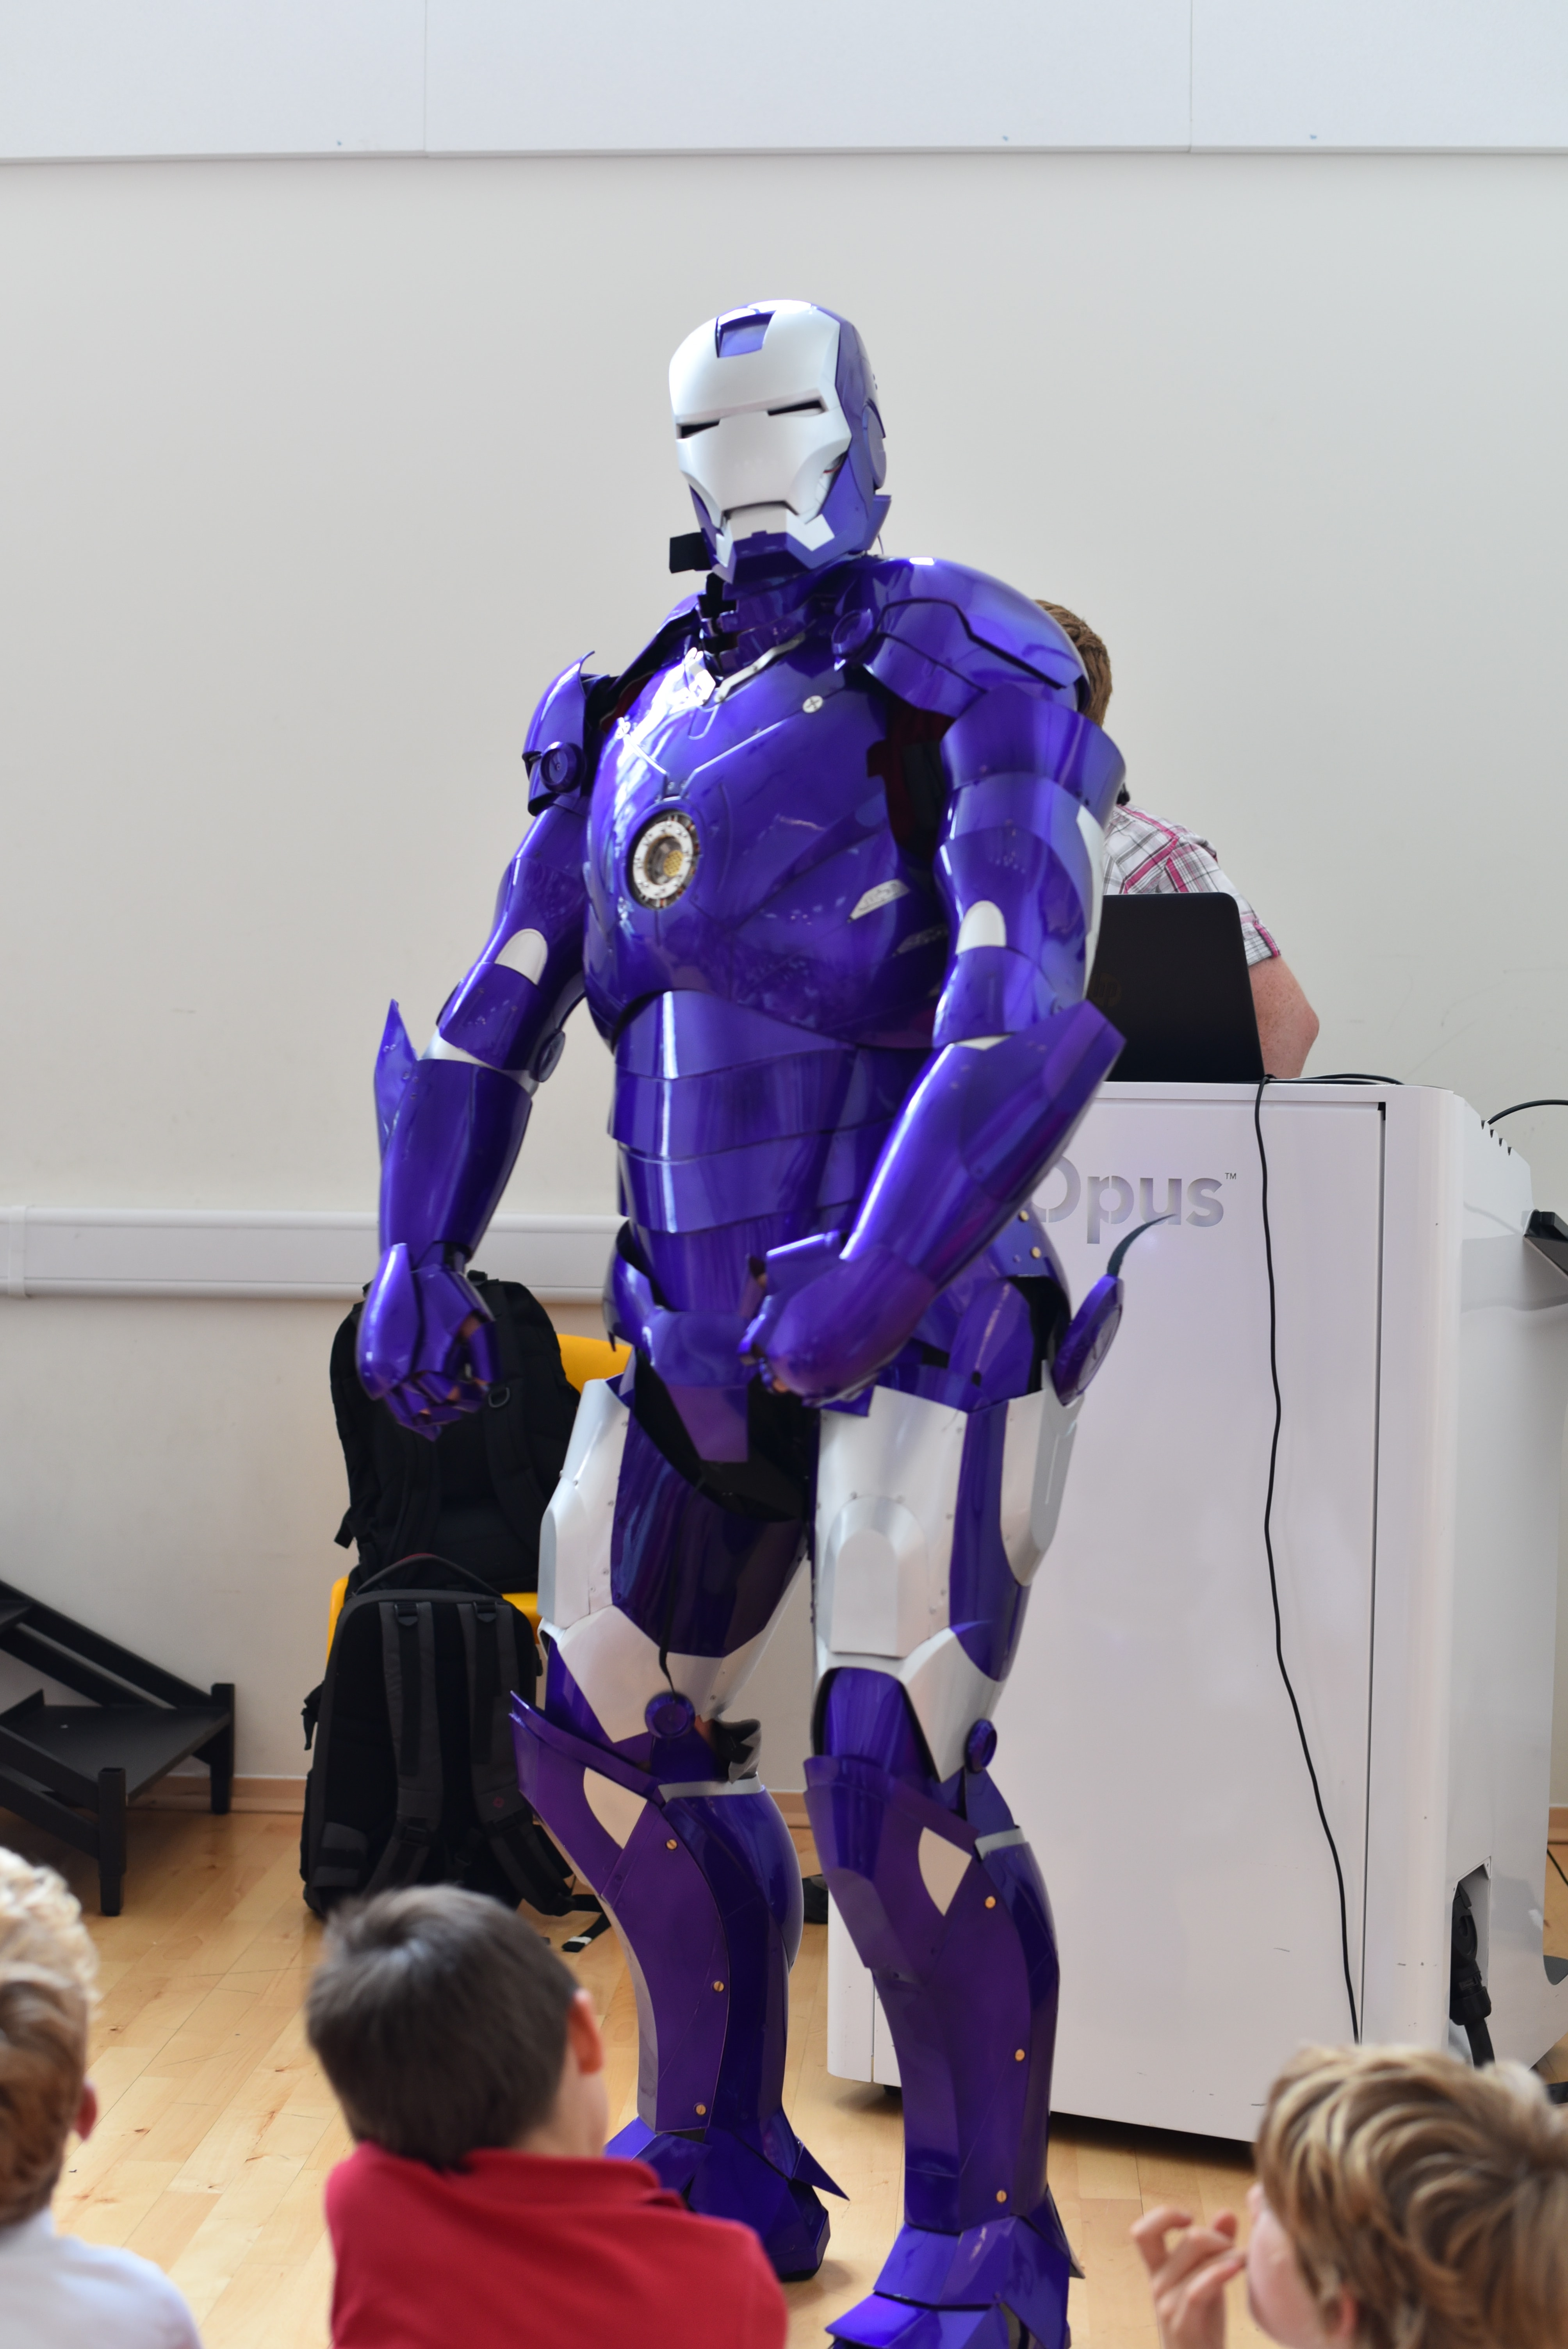 Ironamn suit at southville school - robotics outreach